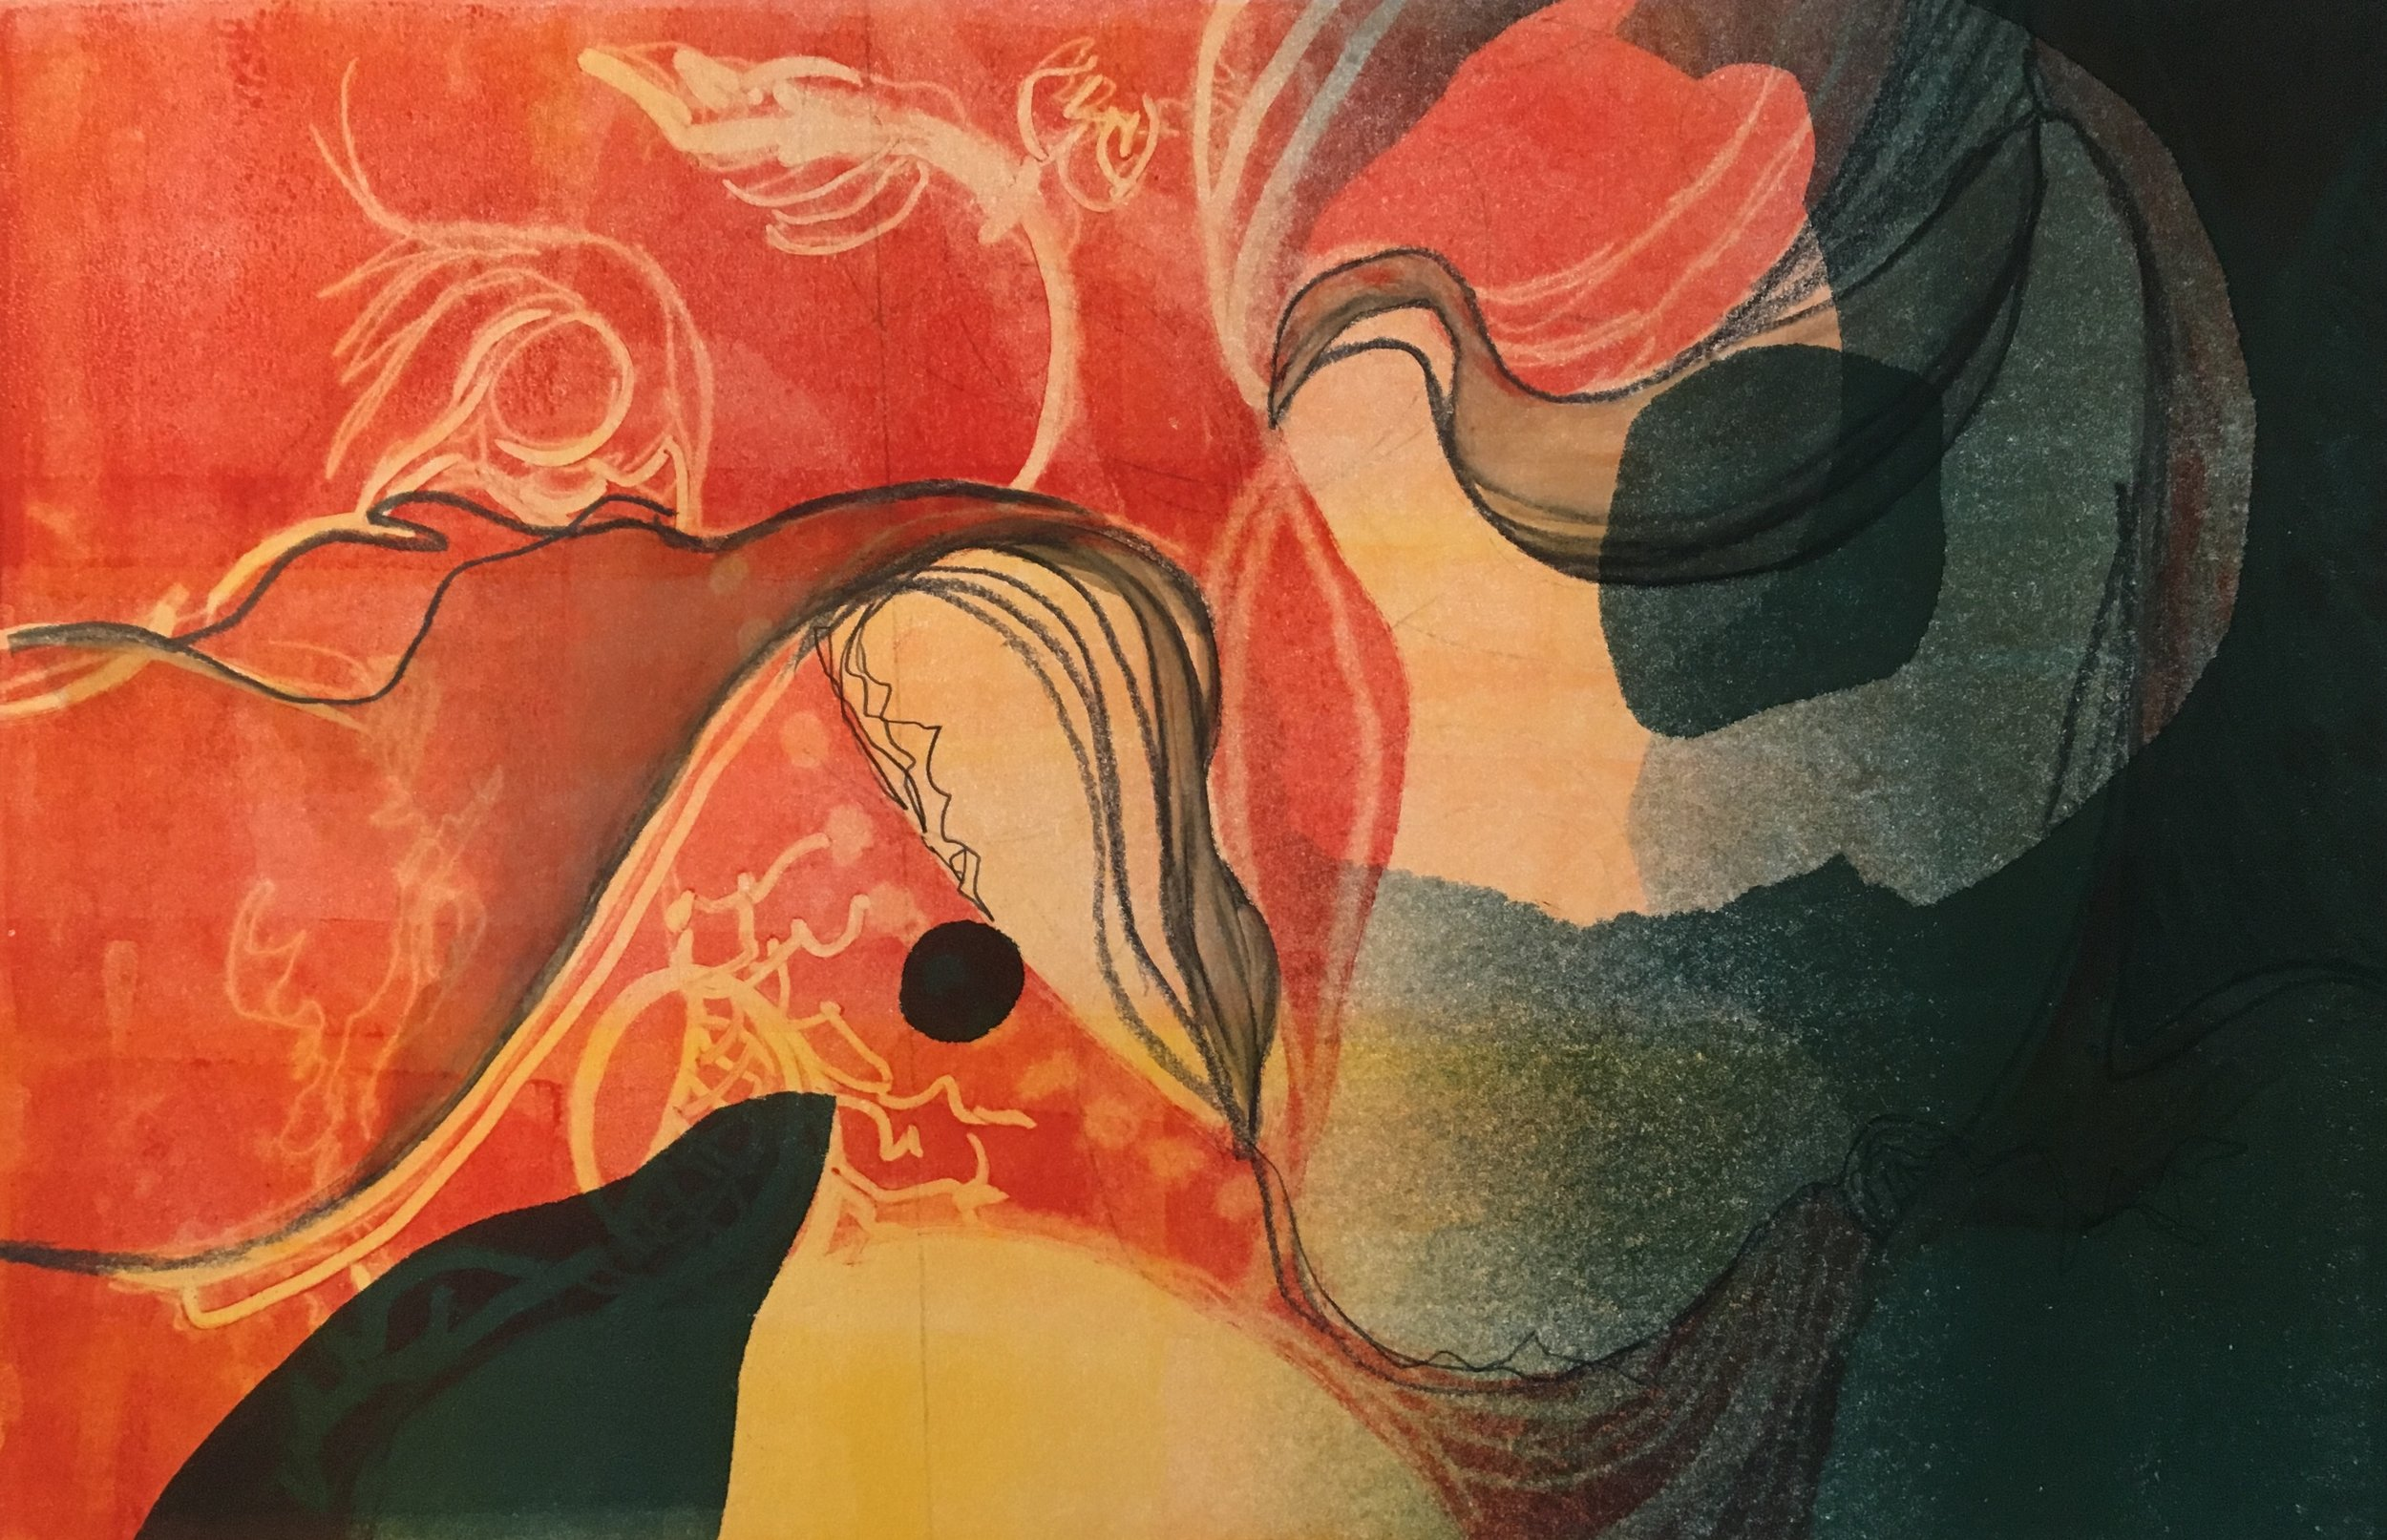 "<p><strong>ANN MILLER</strong>printmaking, collage<a href=""/ann-miller"">More →</a></p>"